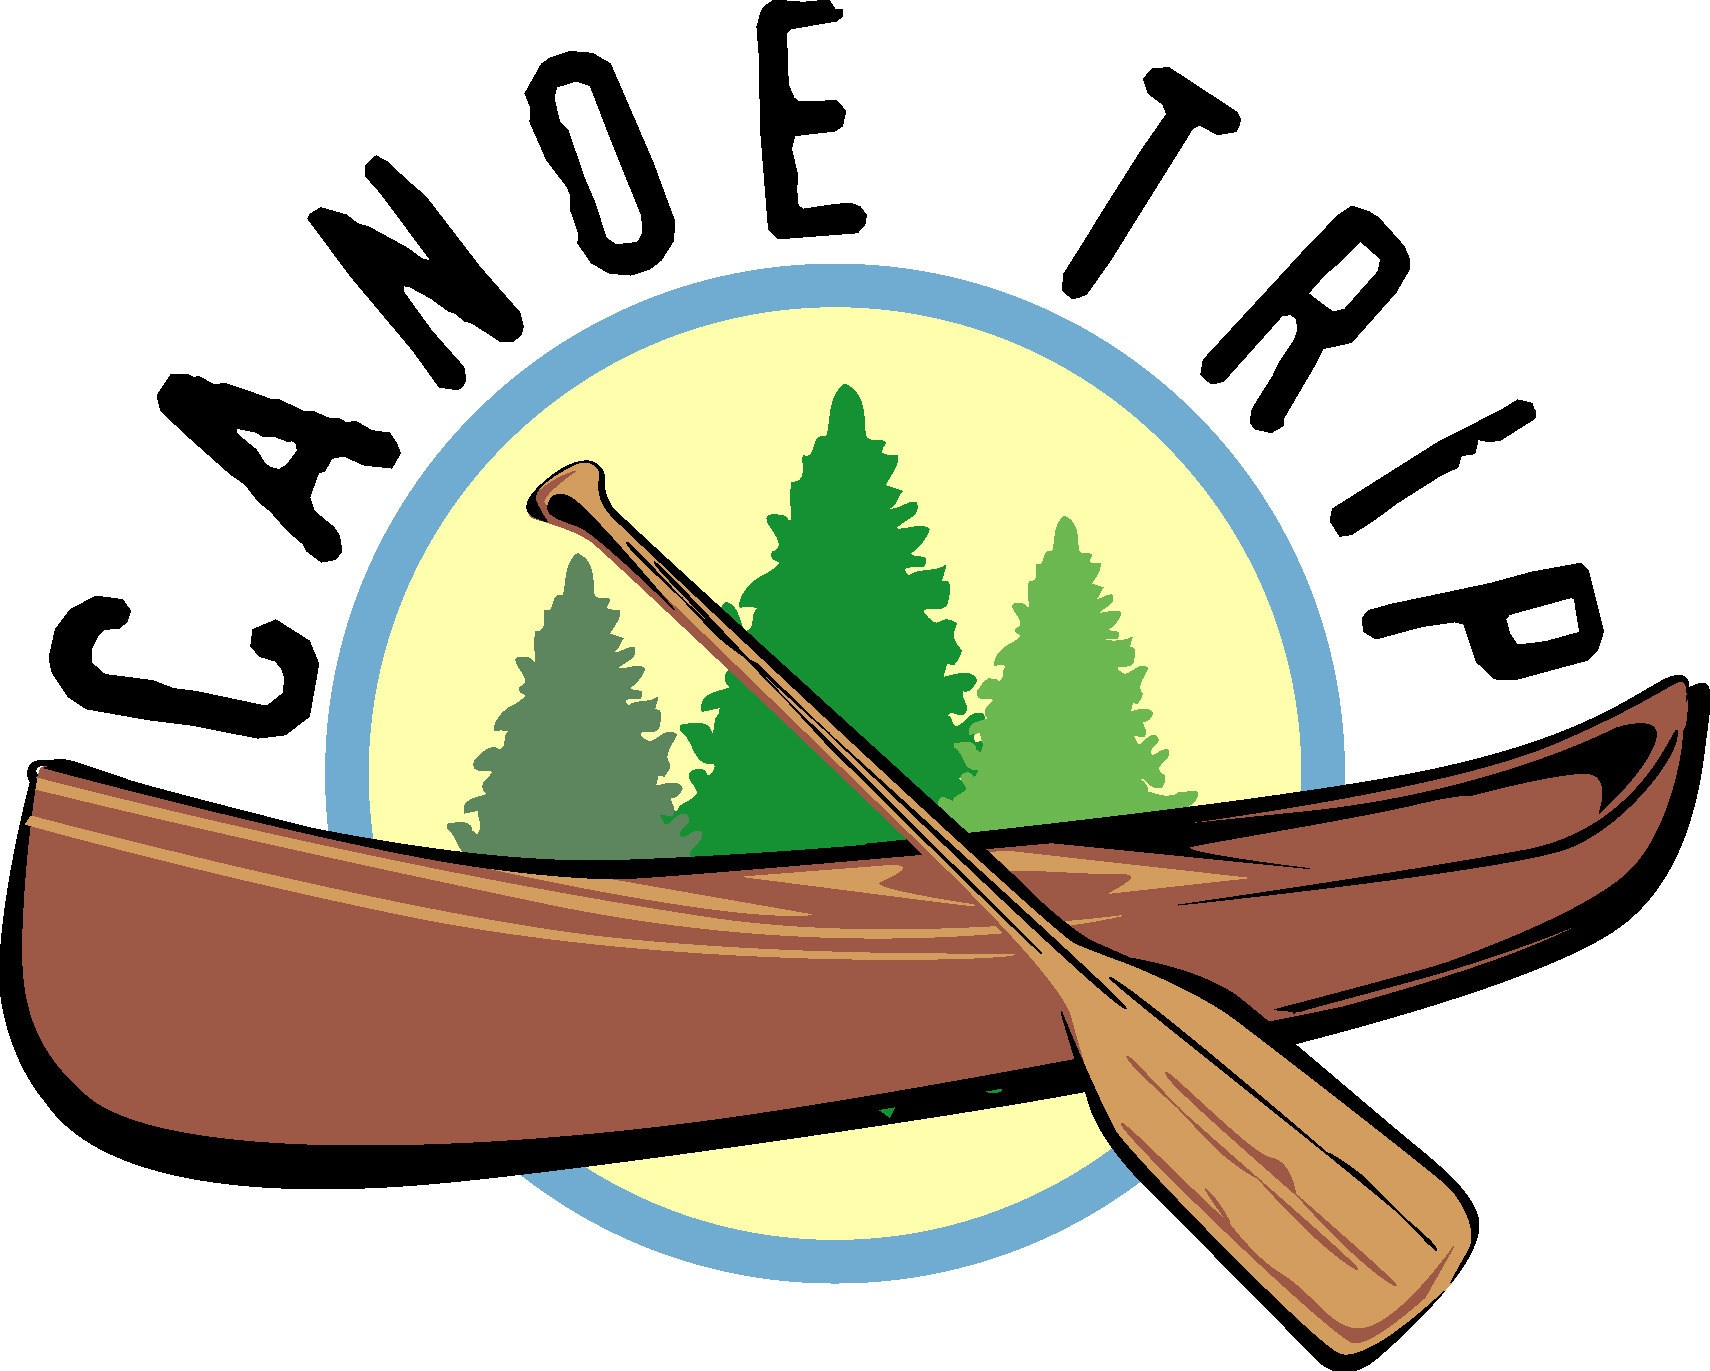 Canoe images clipart clip library download Canoe clipart images 4 » Clipart Portal clip library download